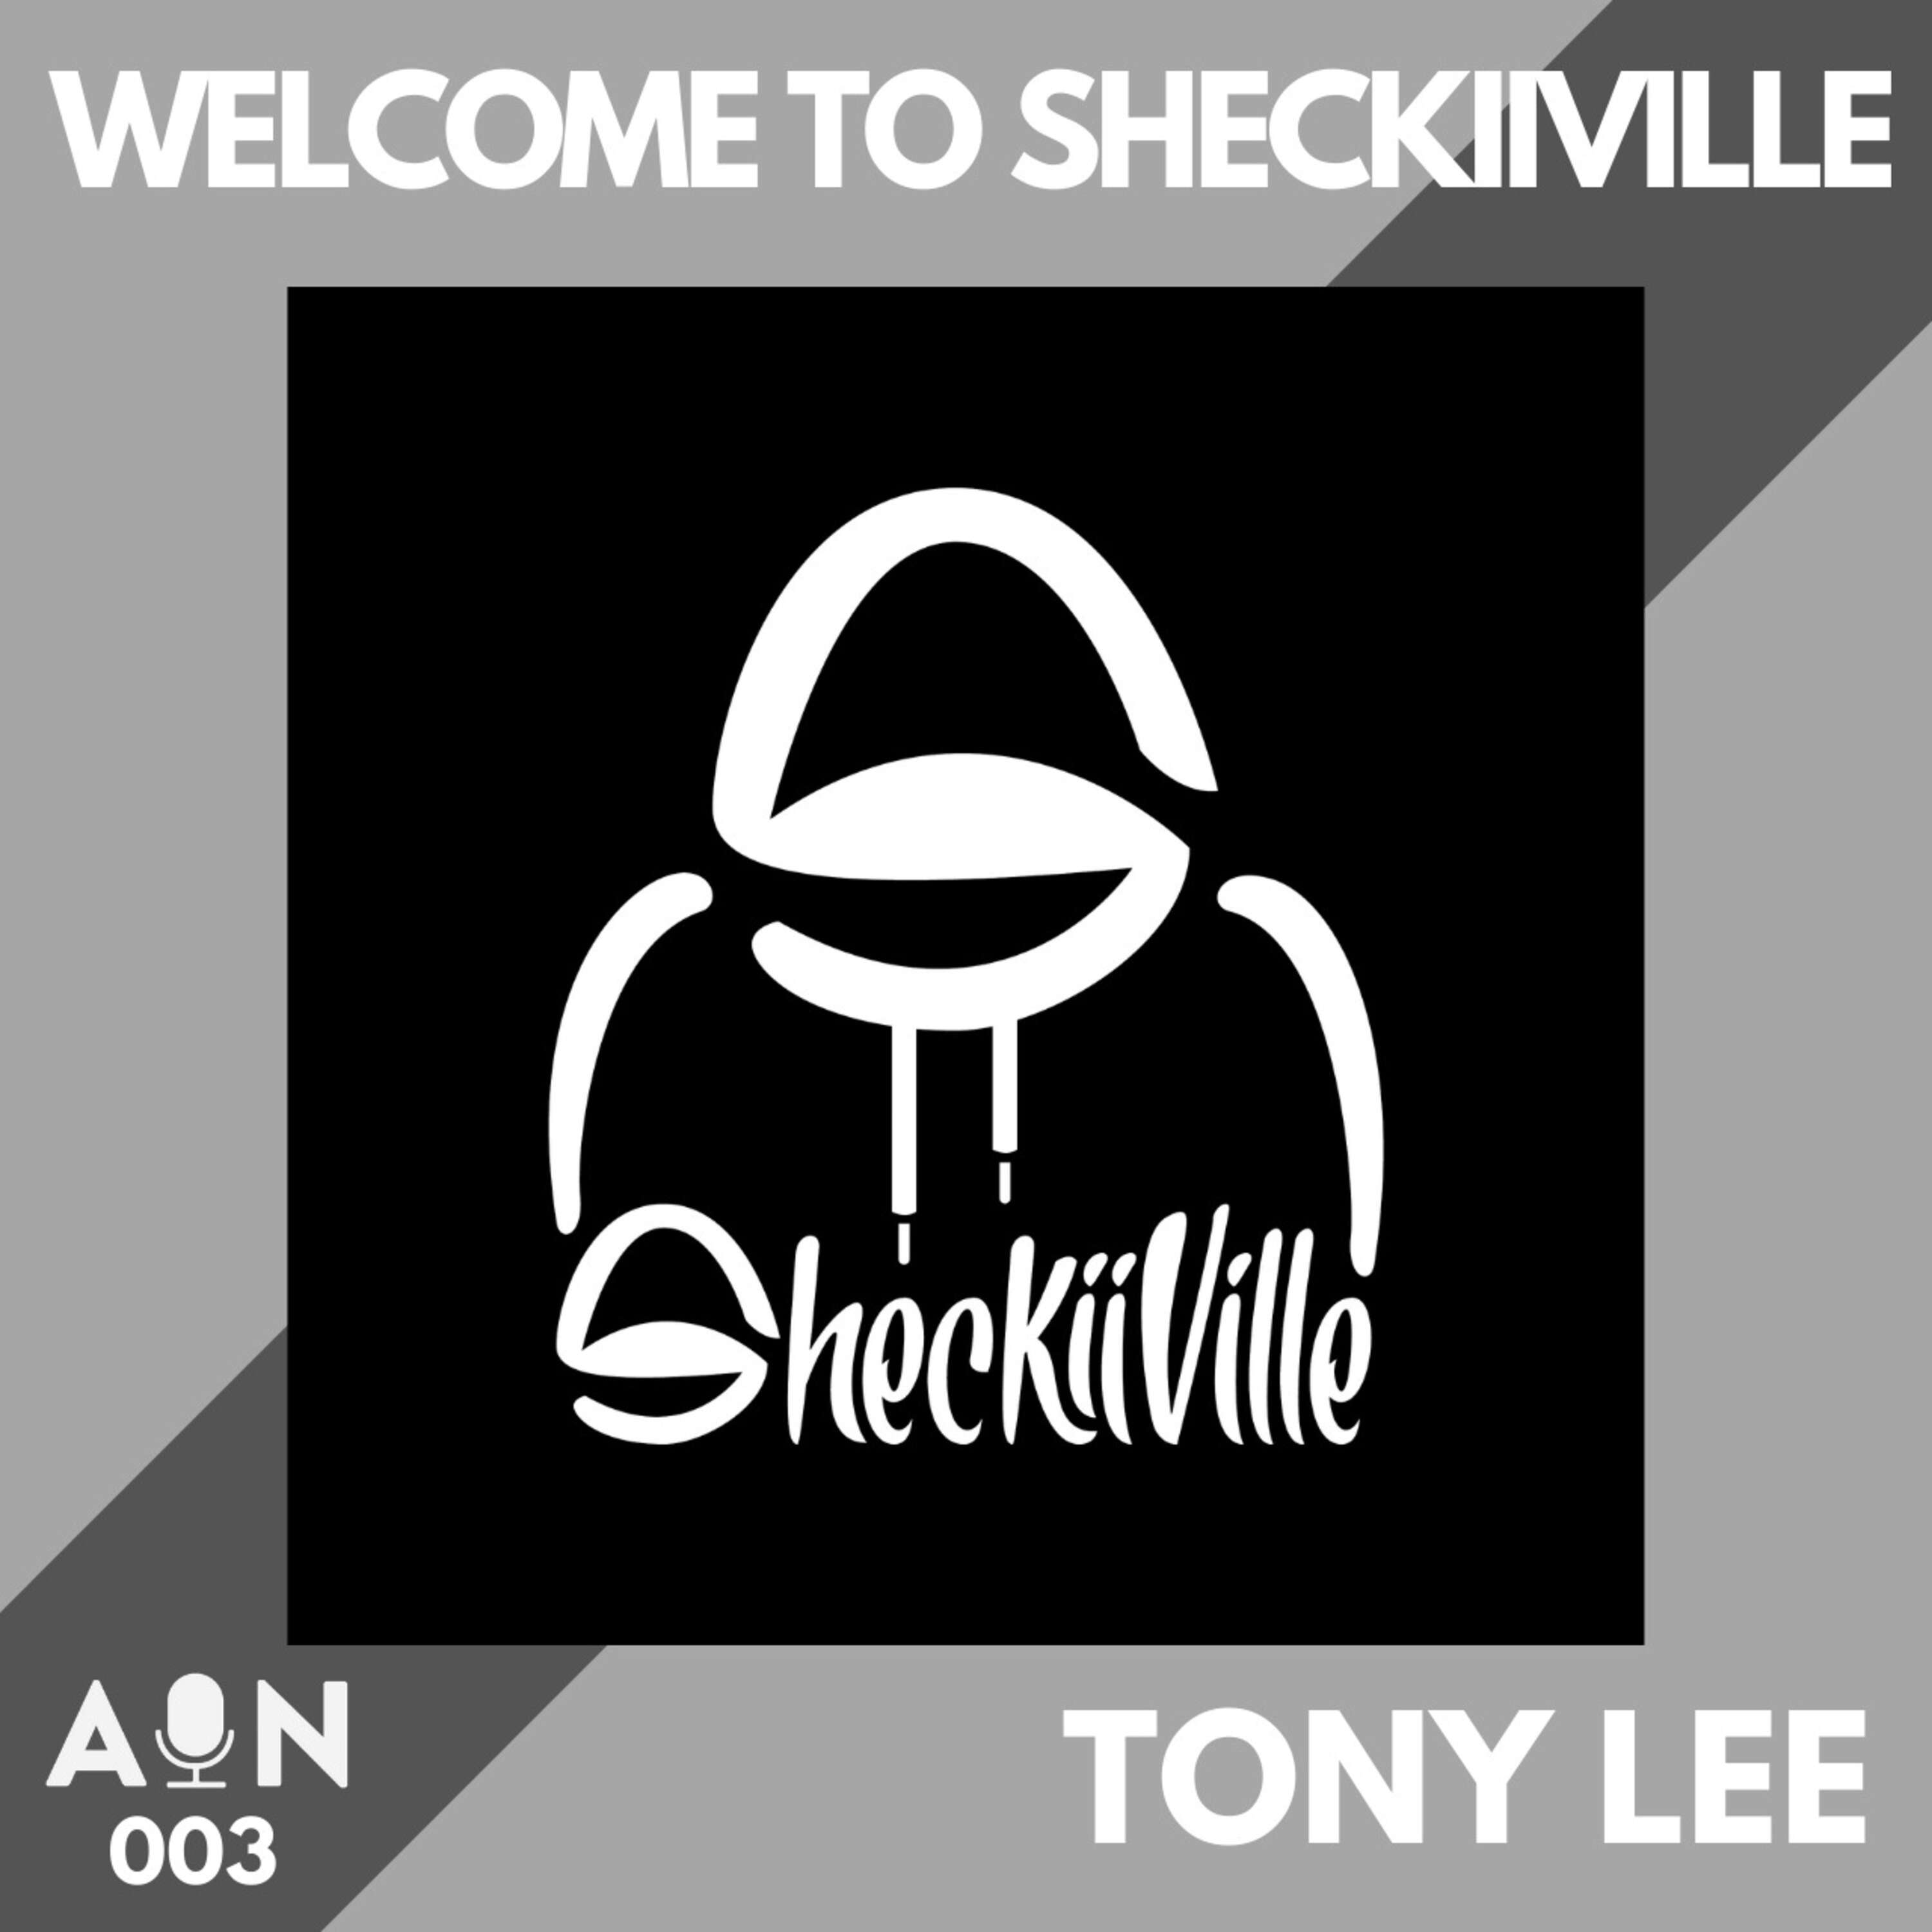 003 // Welcome to Sheckiiville with Tony Lee // Los Angeles, CA - USA